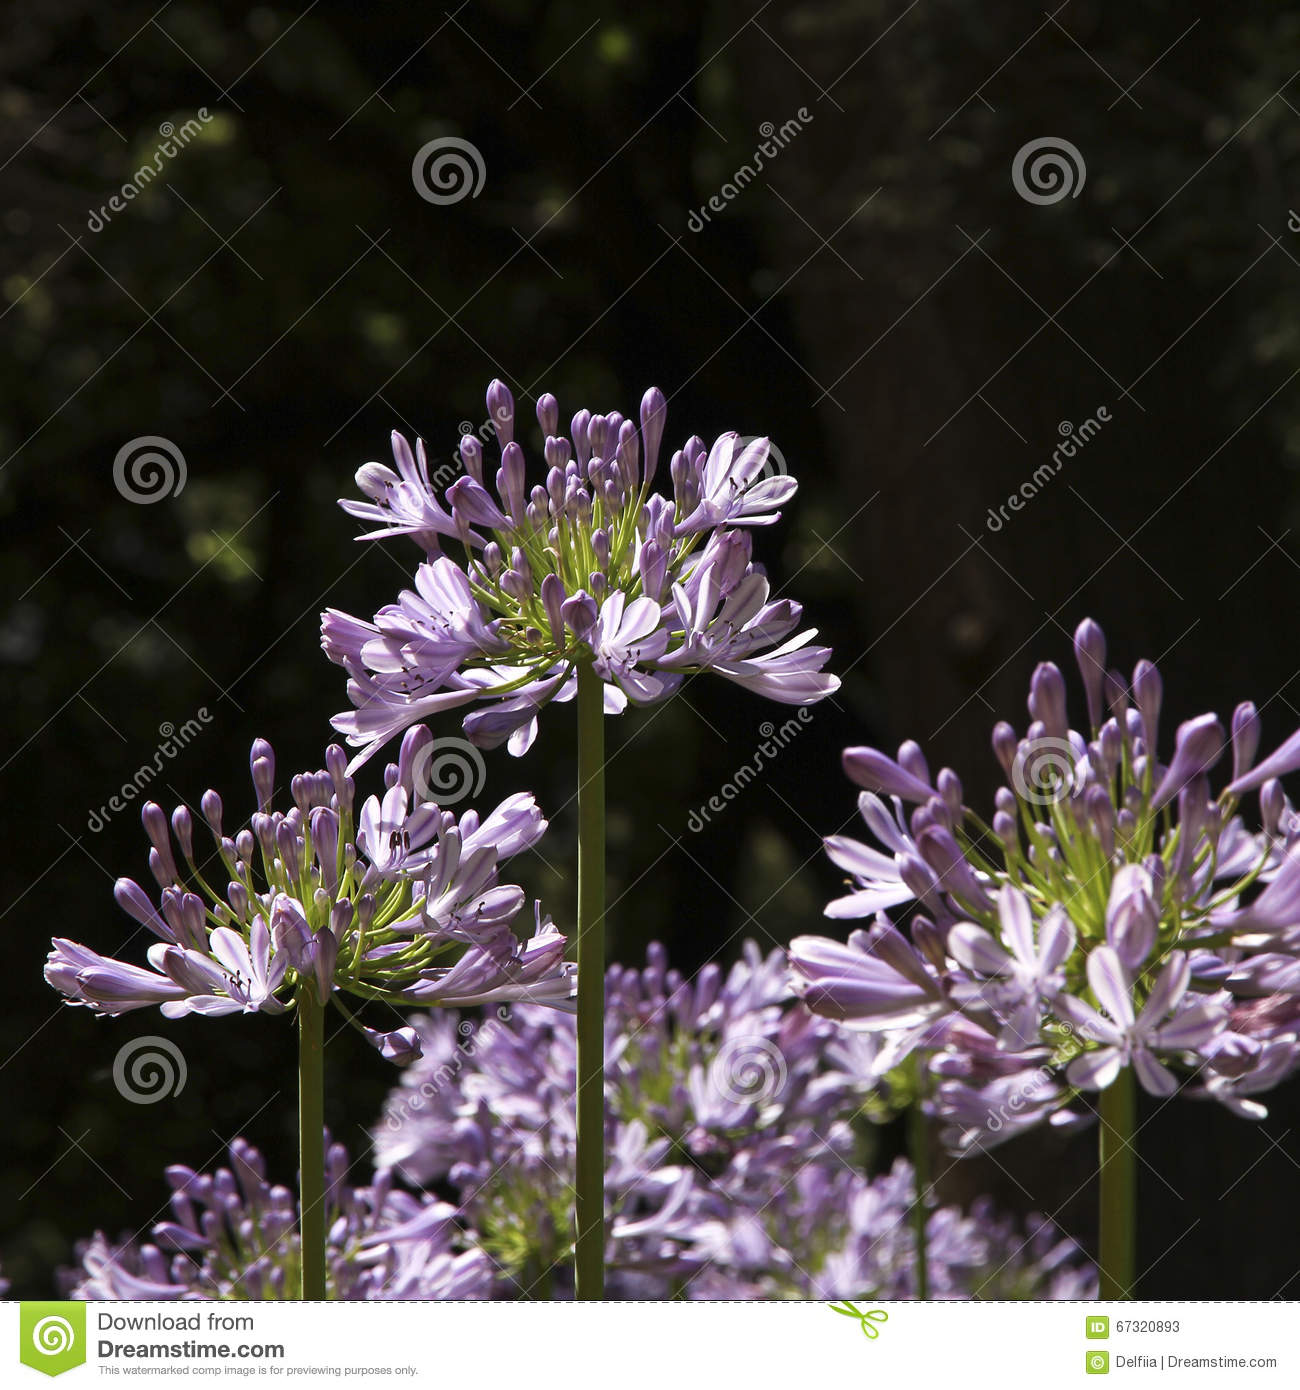 Agapnthus Flower In The Garden Stock Image Image Of Round